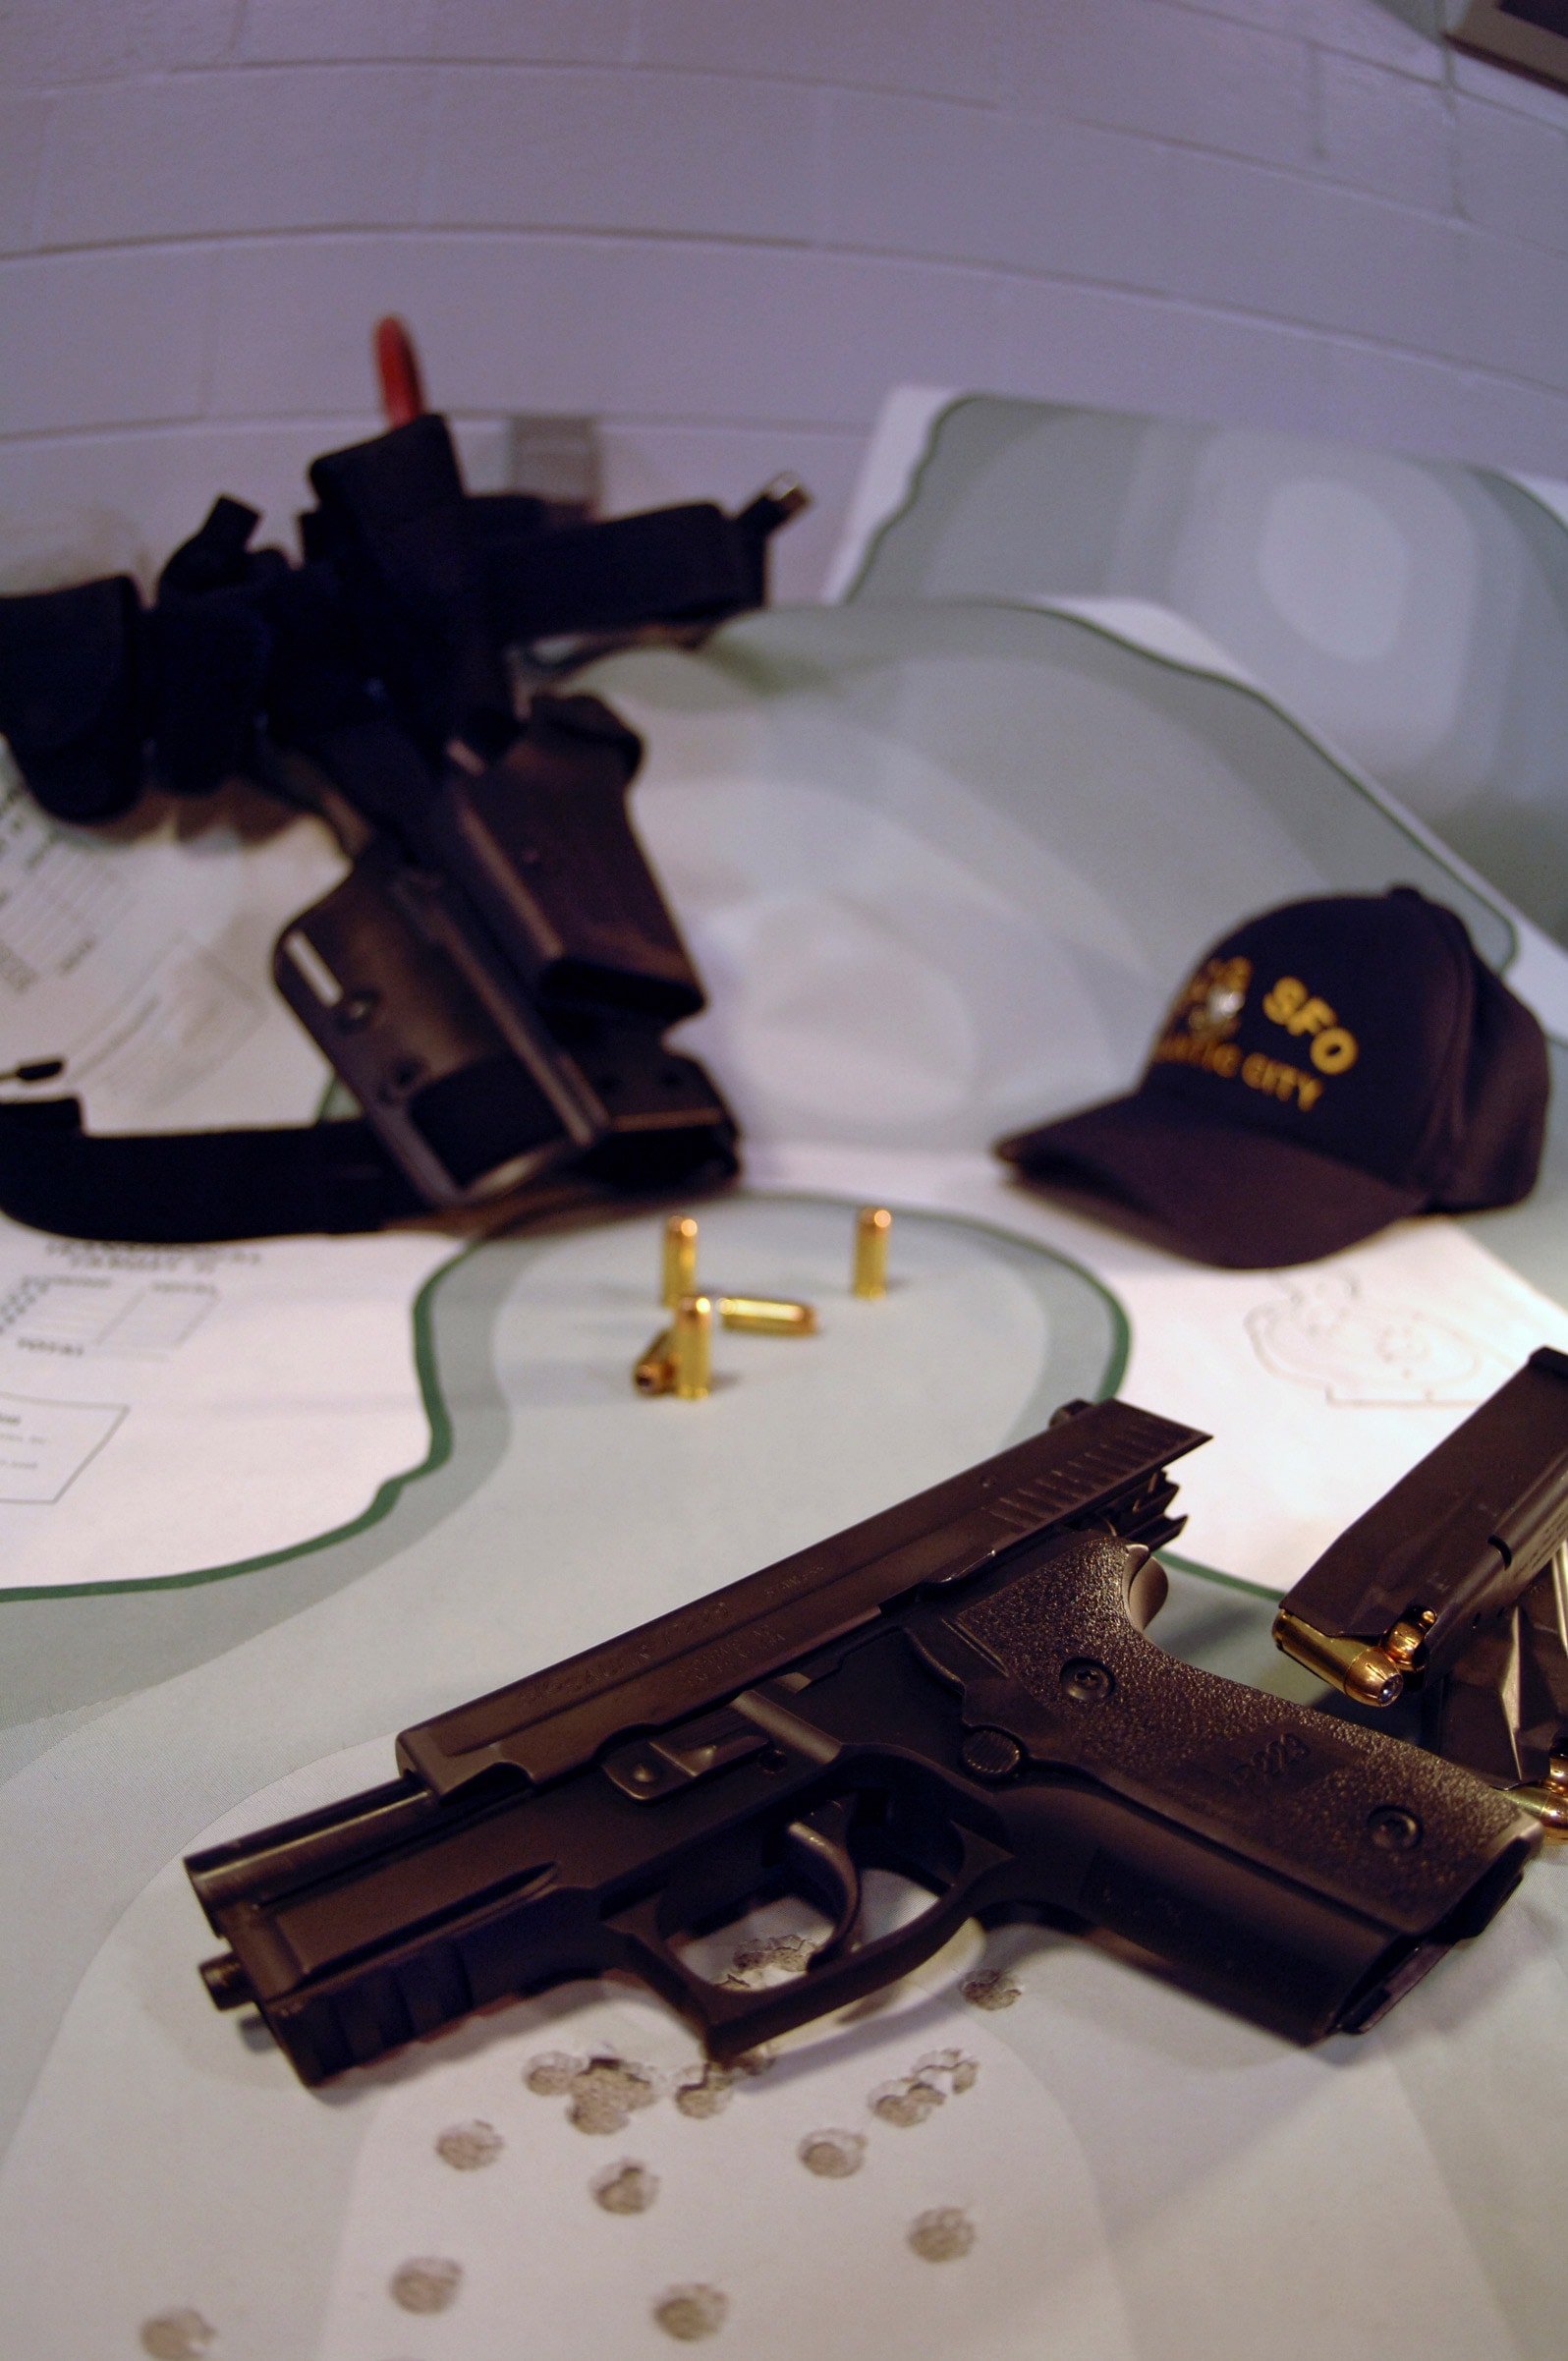 The USCG has used Sig P229s in service.